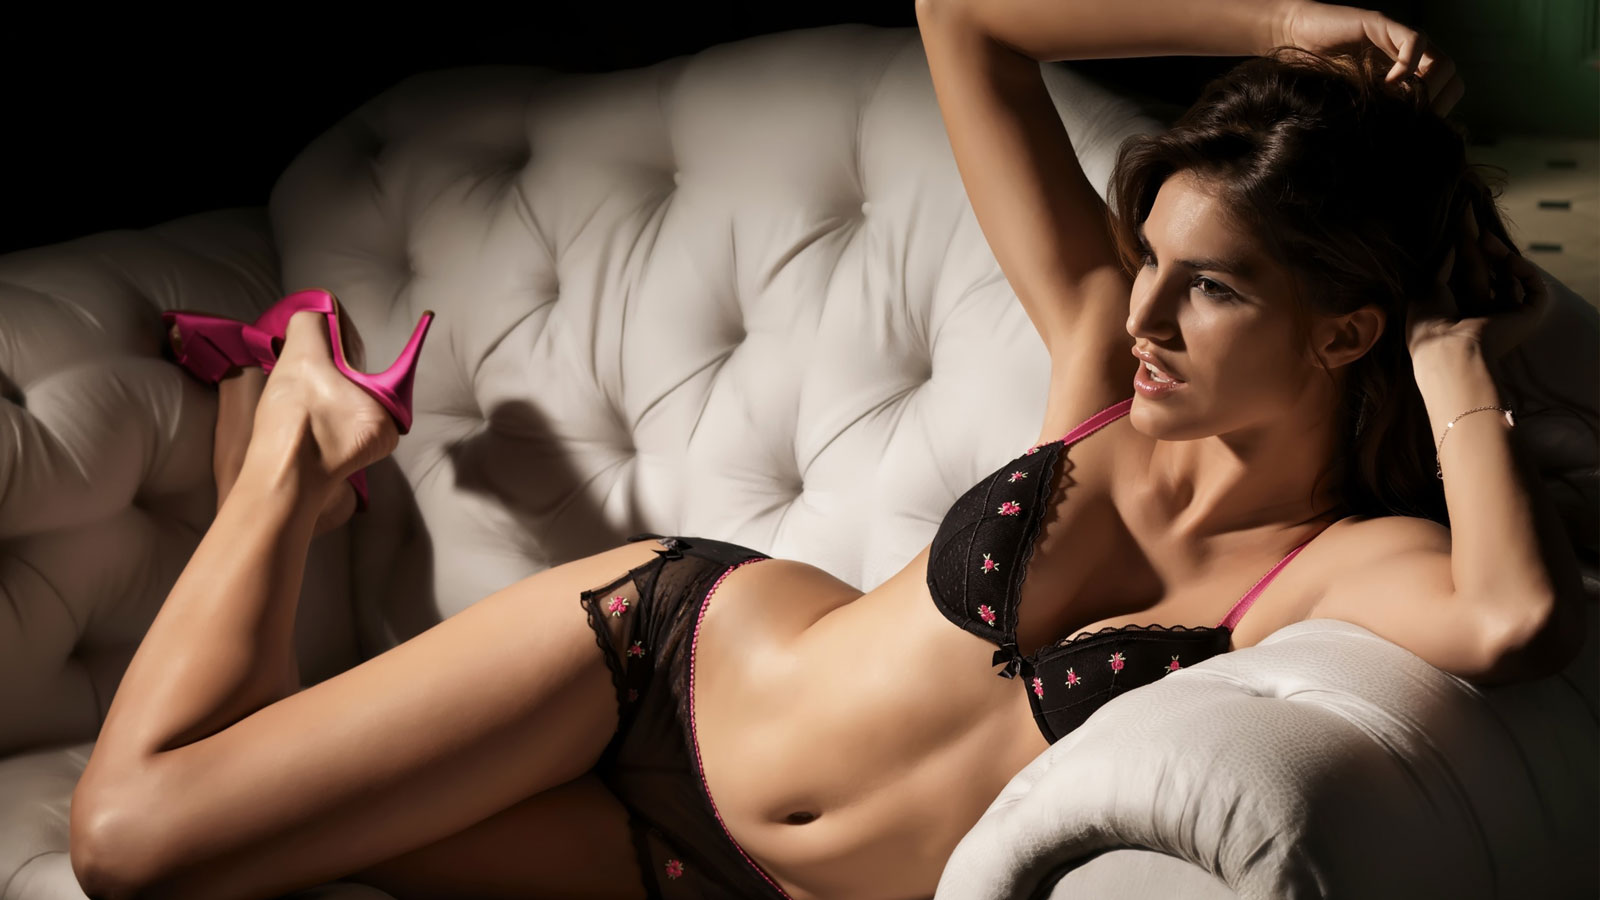 Find female escorts near Manchester Airport for outcalls